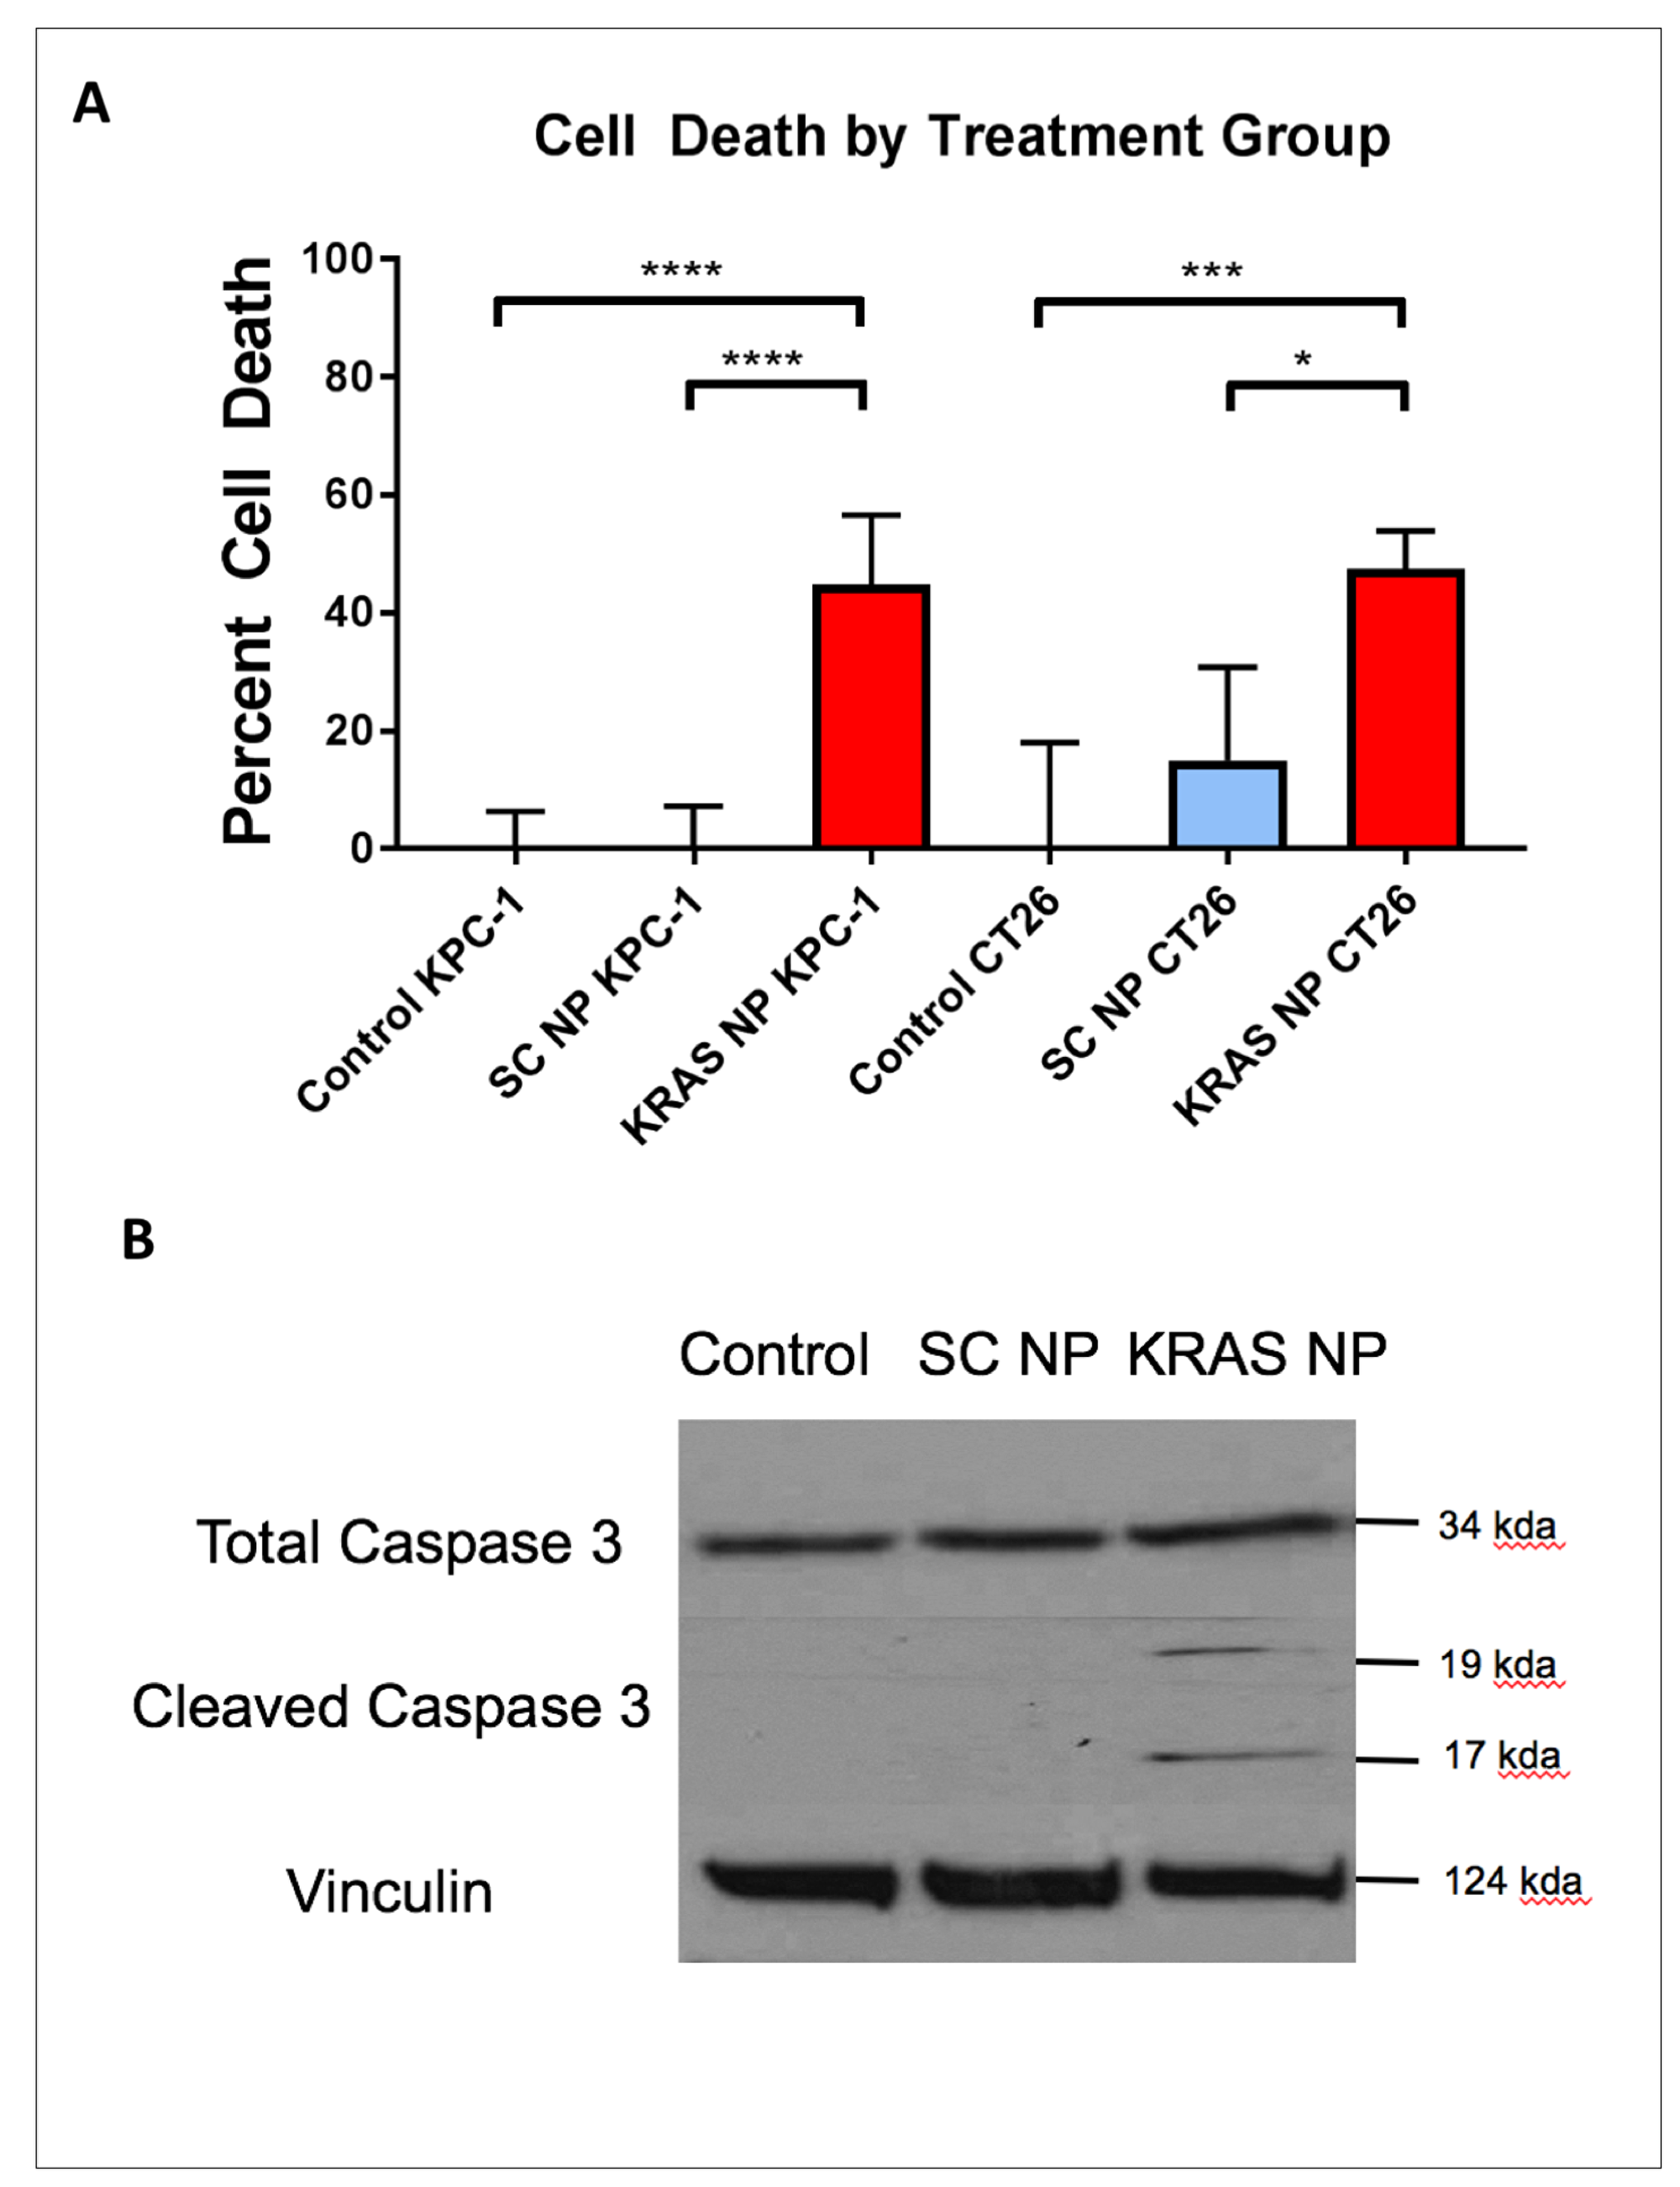 Treatment of pancreatic and colorectal cells with KRAS-siRNA NP leads to apoptosis mediated cell death.